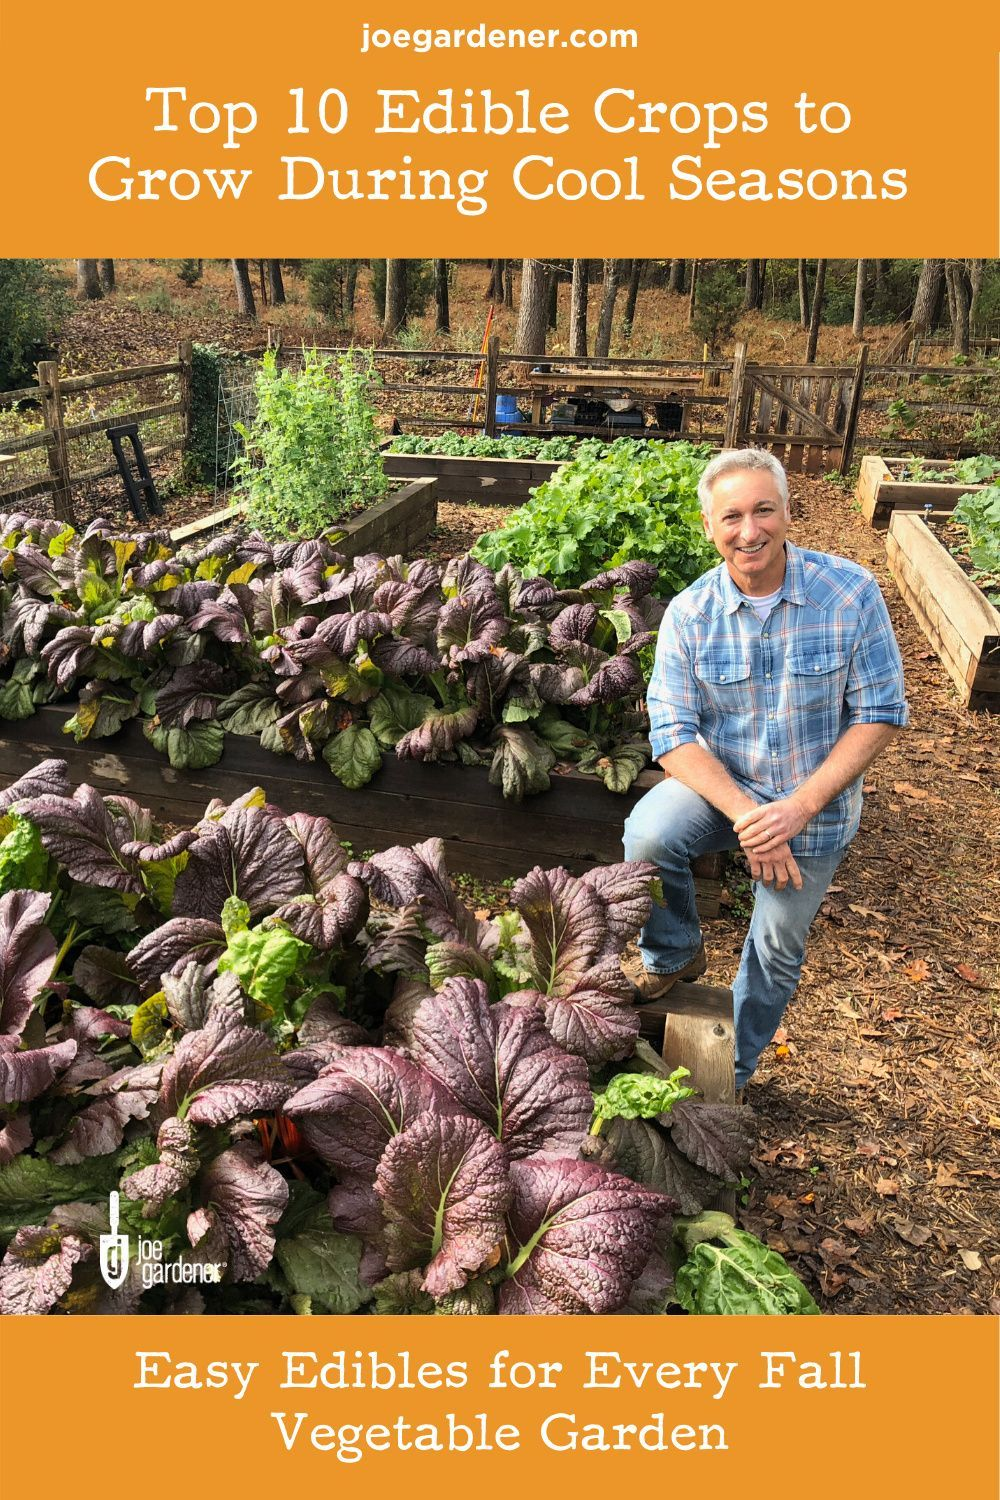 Many vegetables perform best when things cool down, and the cooler temperatures make gardening tasks more enjoyable. Here are 10 cool season crops to grow in a fall vegetable garden. | #fallvegetables #fallvegetablegarden #fallcrops #fallvegetables to plant